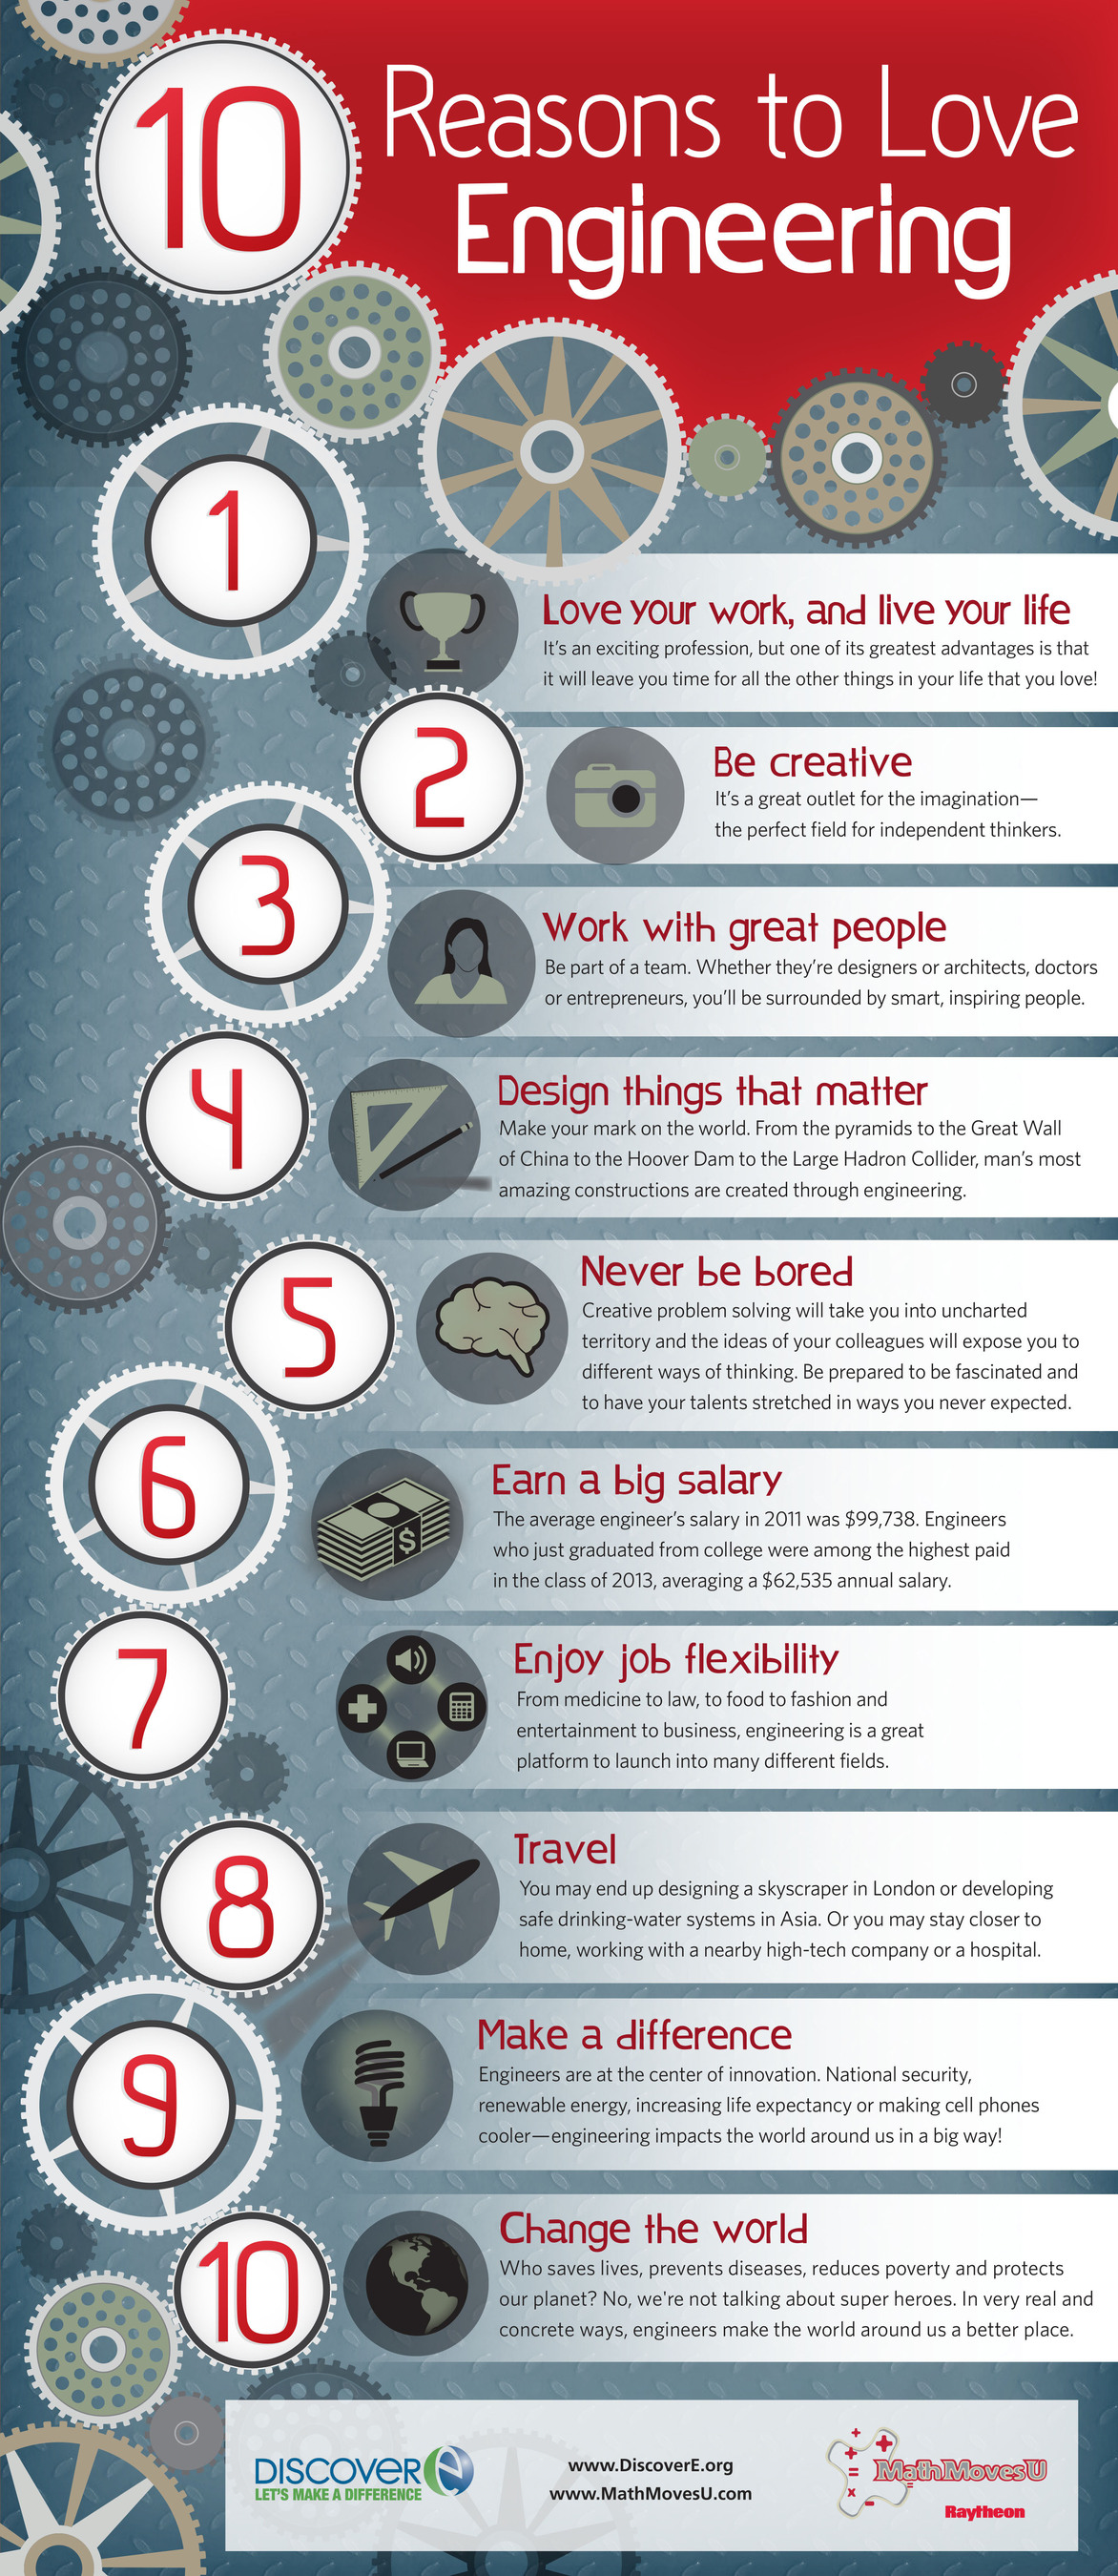 Engineering is a fast growing profession in the U.S. Job flexibility, great salaries, creativity are just a few  ...